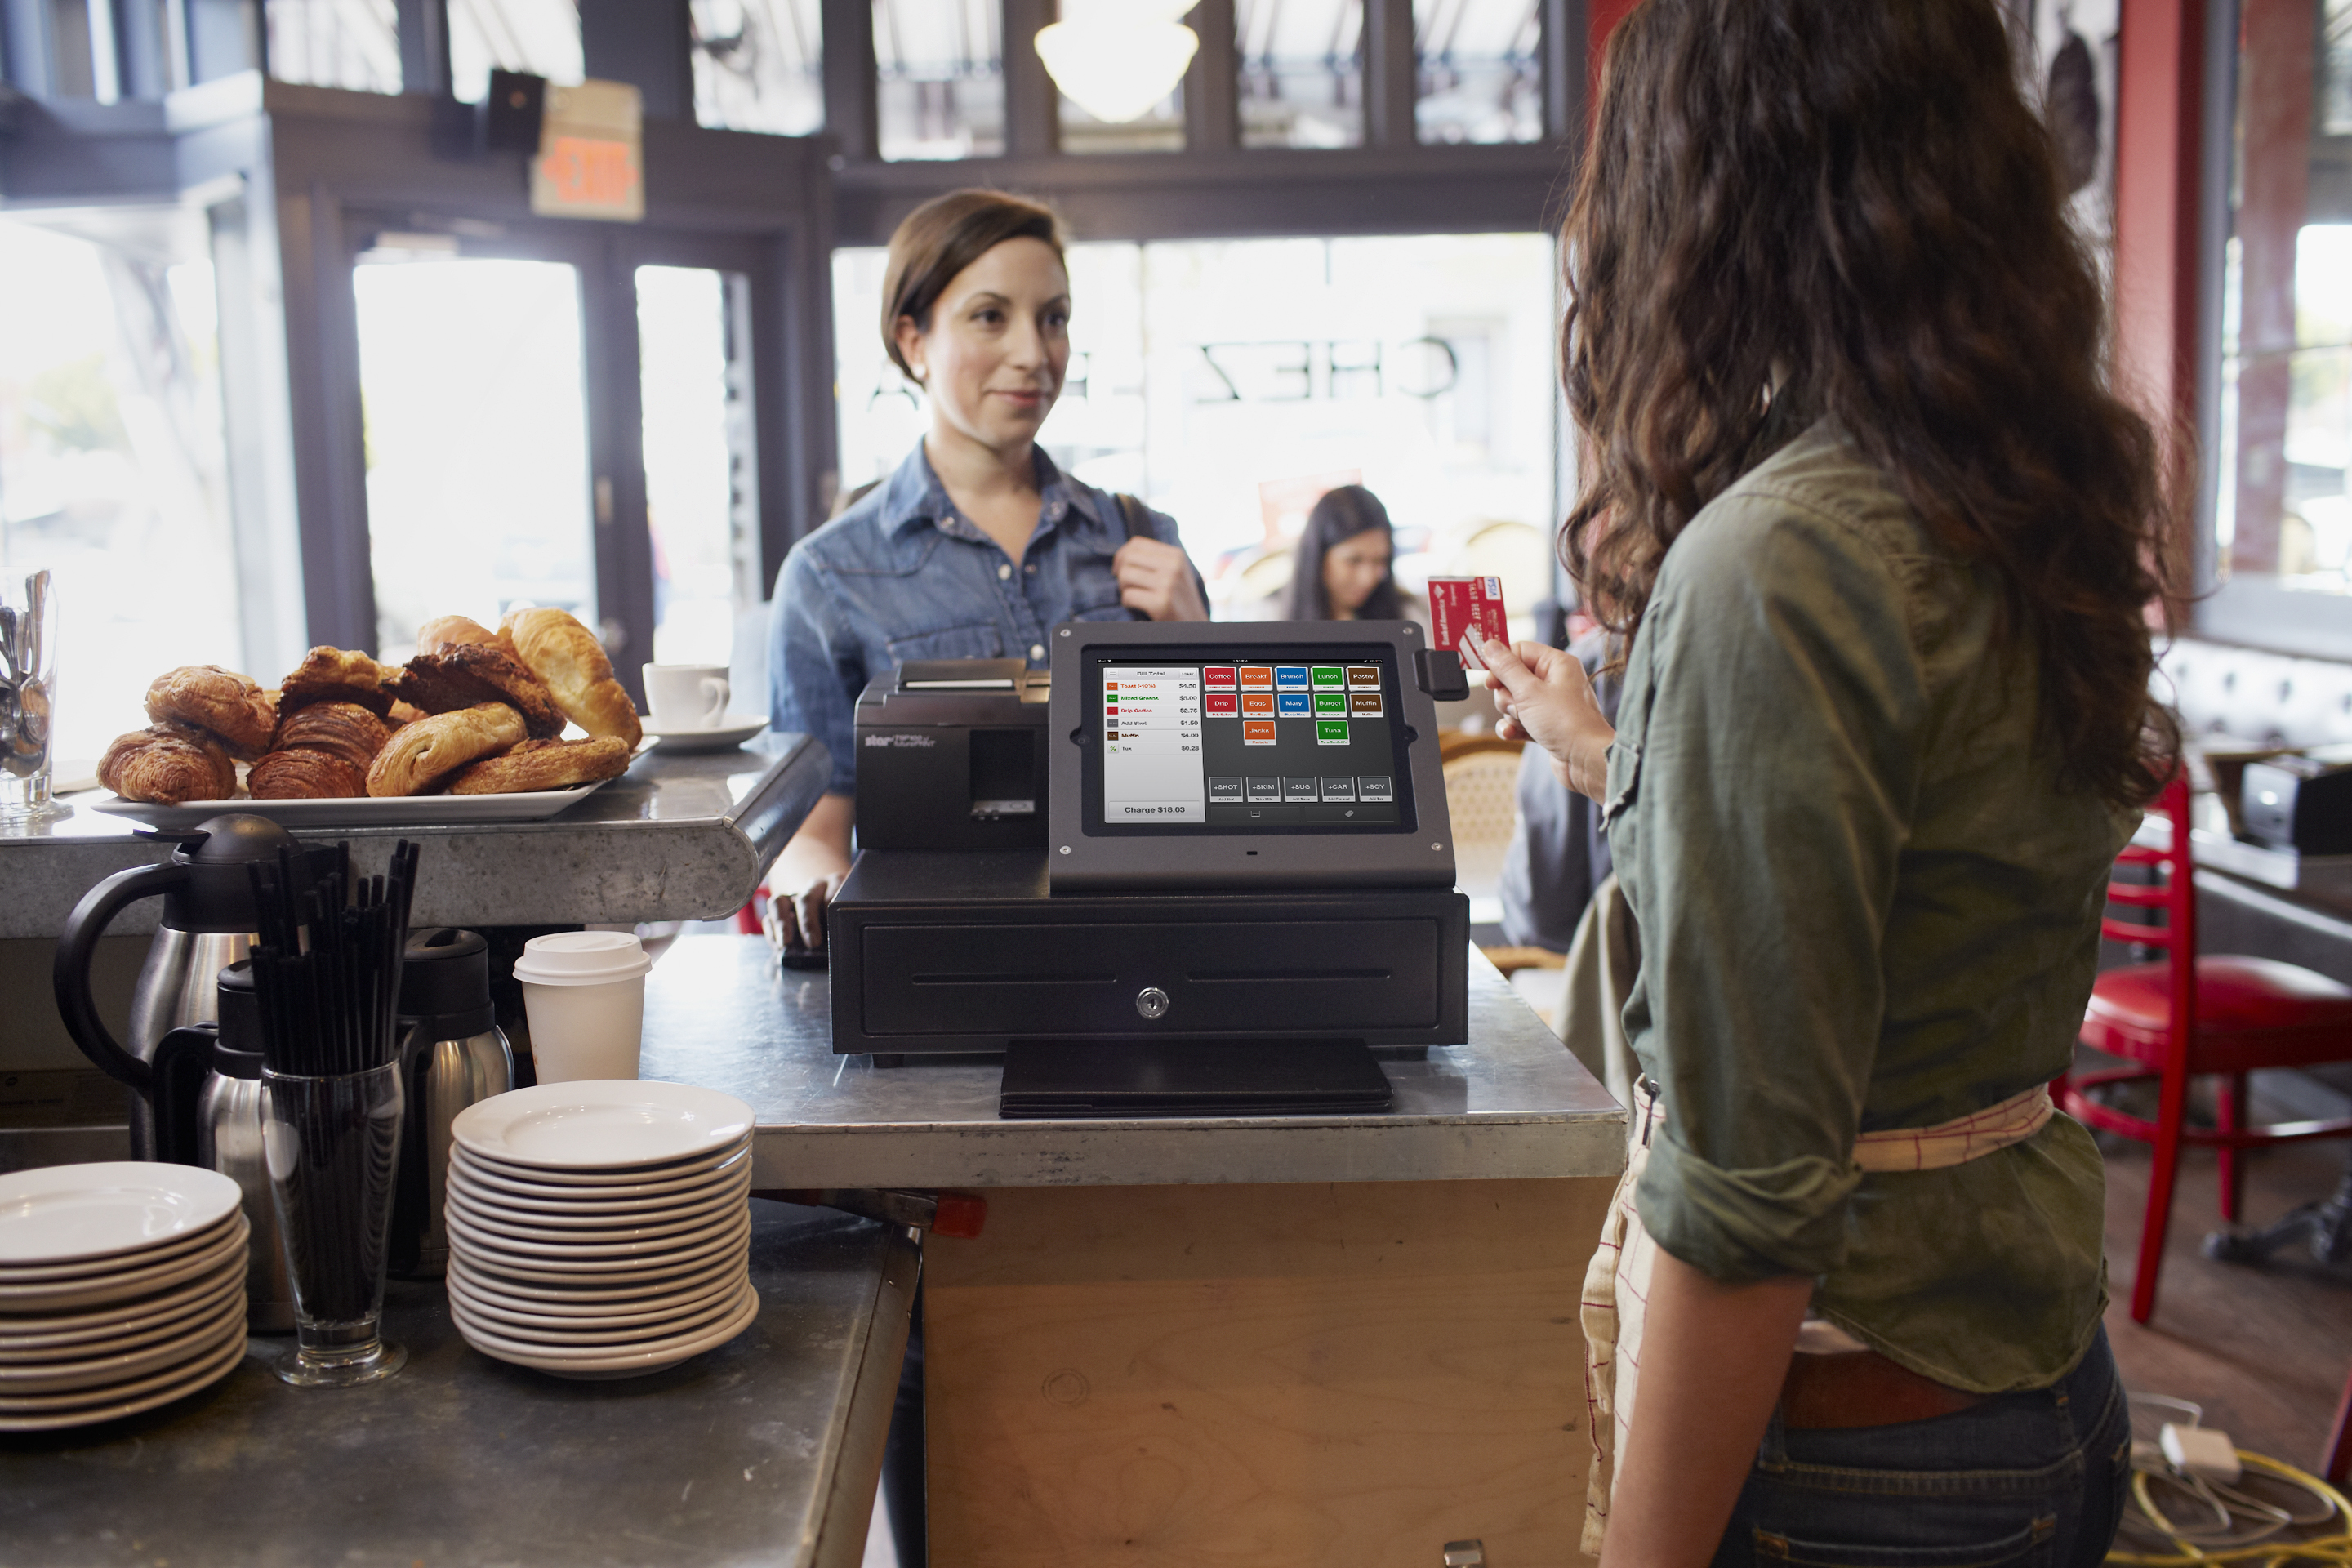 Groupon Expands Point-of-Sale Suite with New Breadcrumb iPad